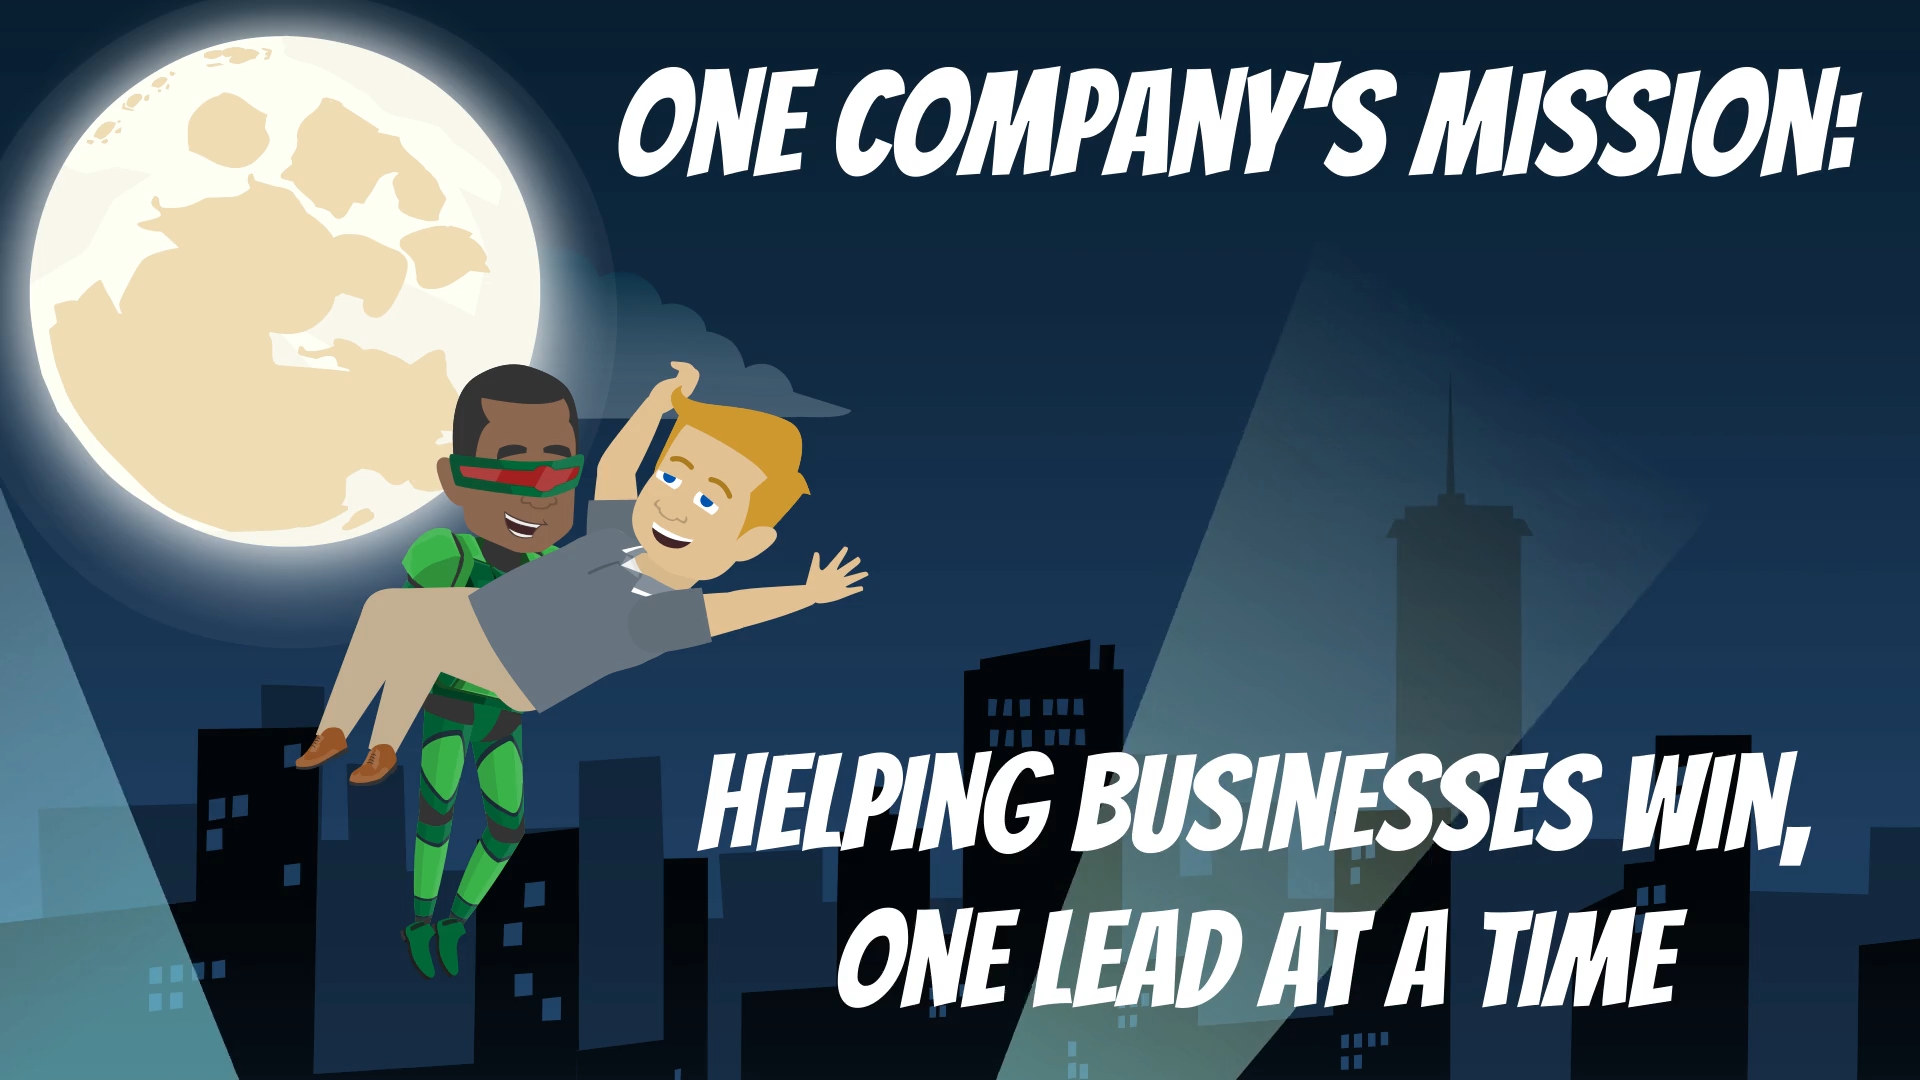 Helping businesses win one lead at a time